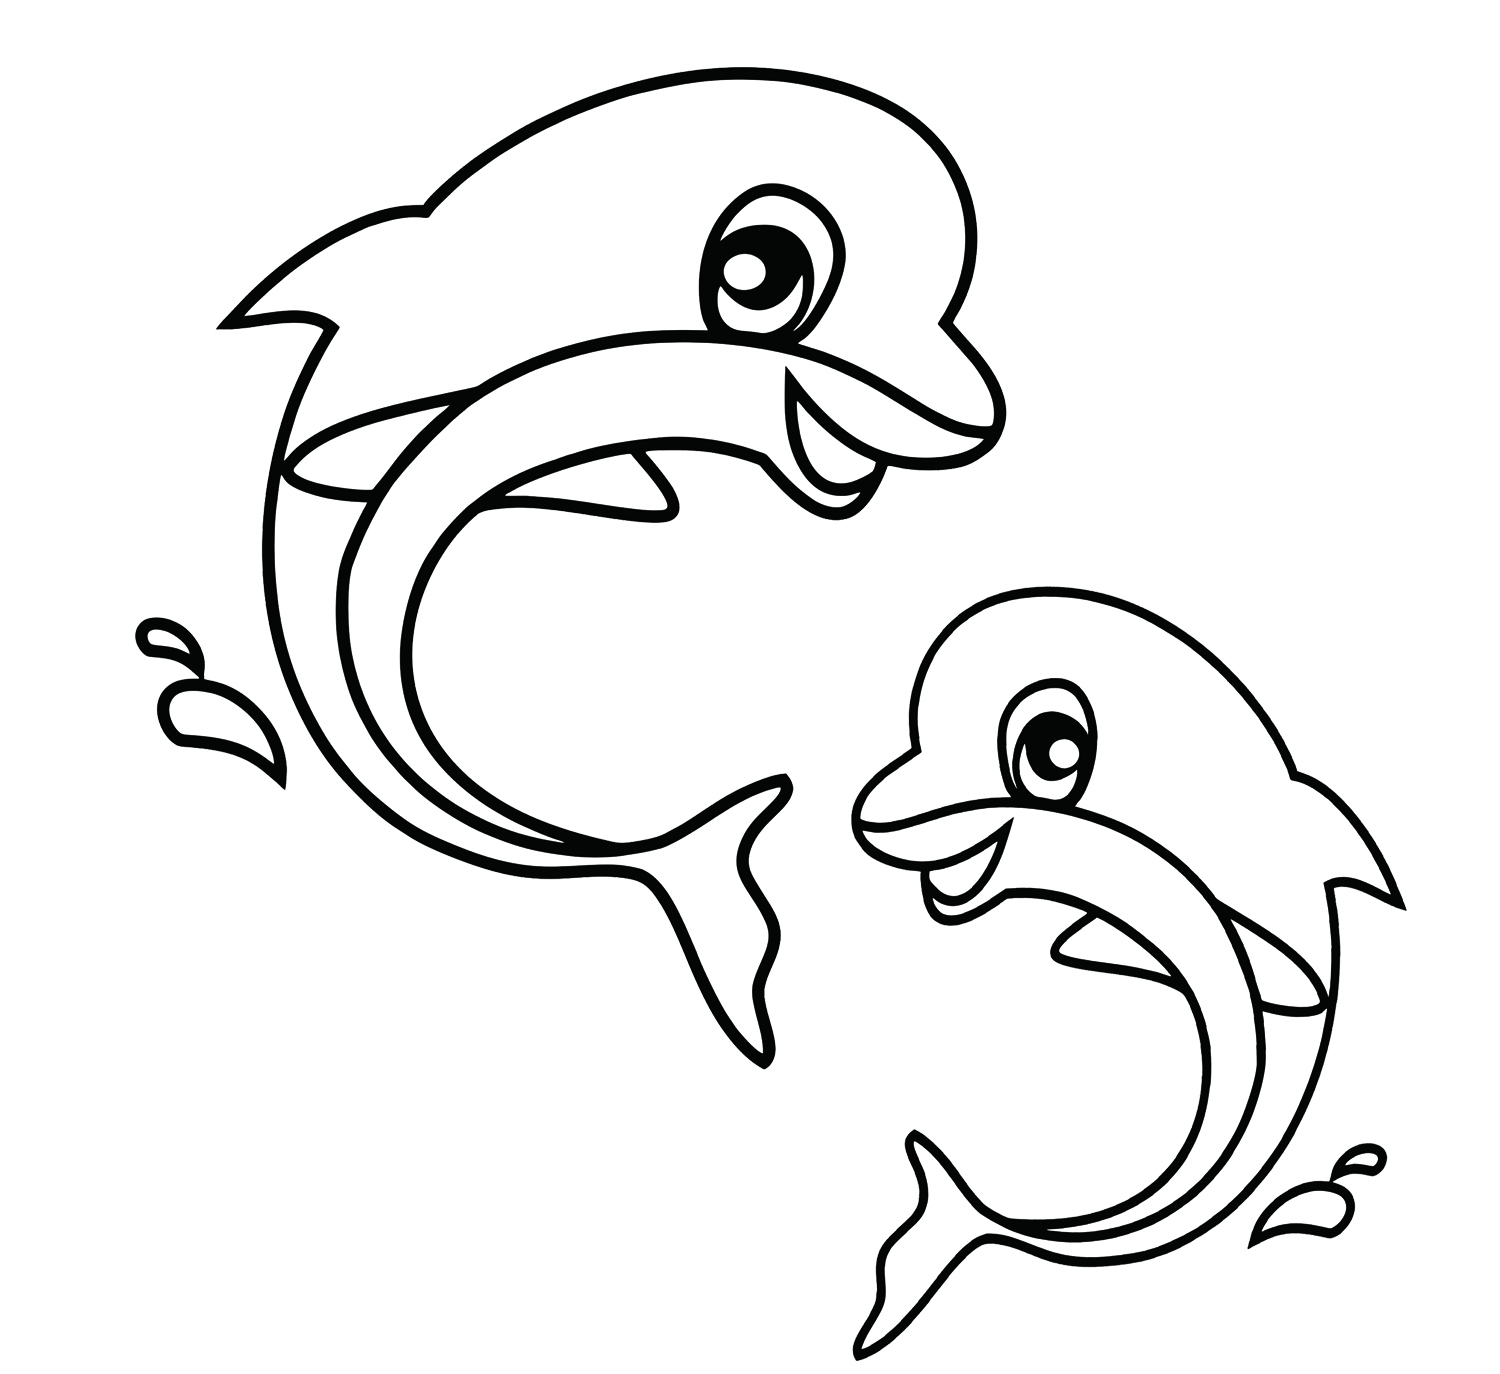 1500x1374 Easy Animal Coloring Pages Easy Cute Step By Animal Drawings